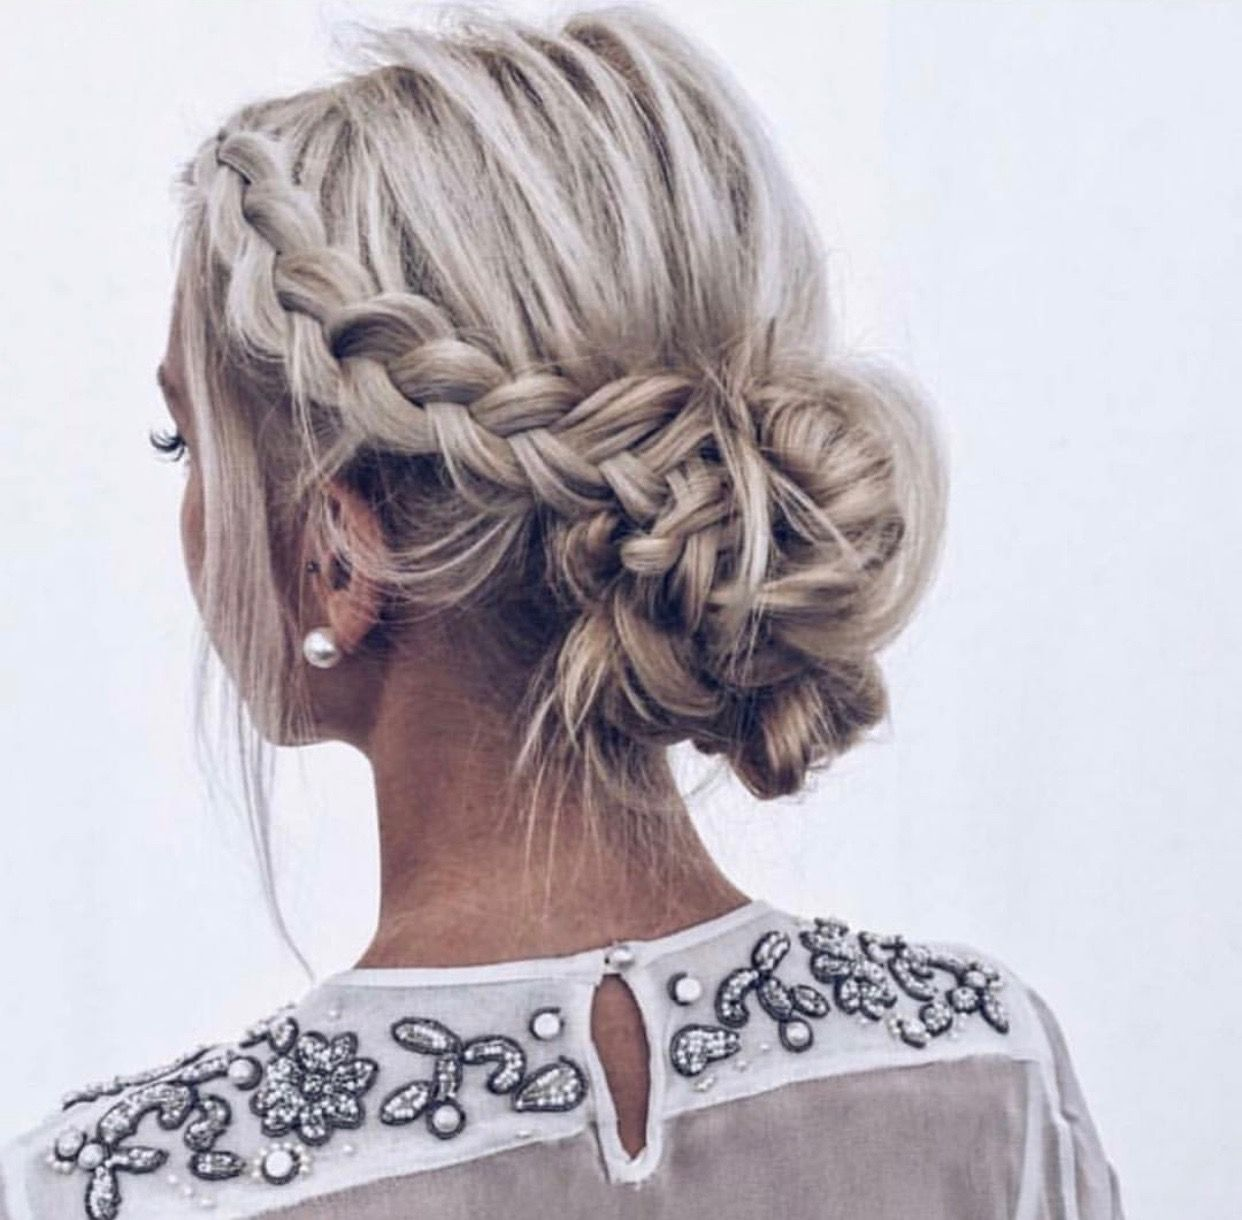 28 Top Braided Low Bun Hairstyle Exemple 15 Latest The Perfect Braided Updo Tease In 2020 Braids For Medium Length Hair Medium Length Hair Styles Medium Hair Styles